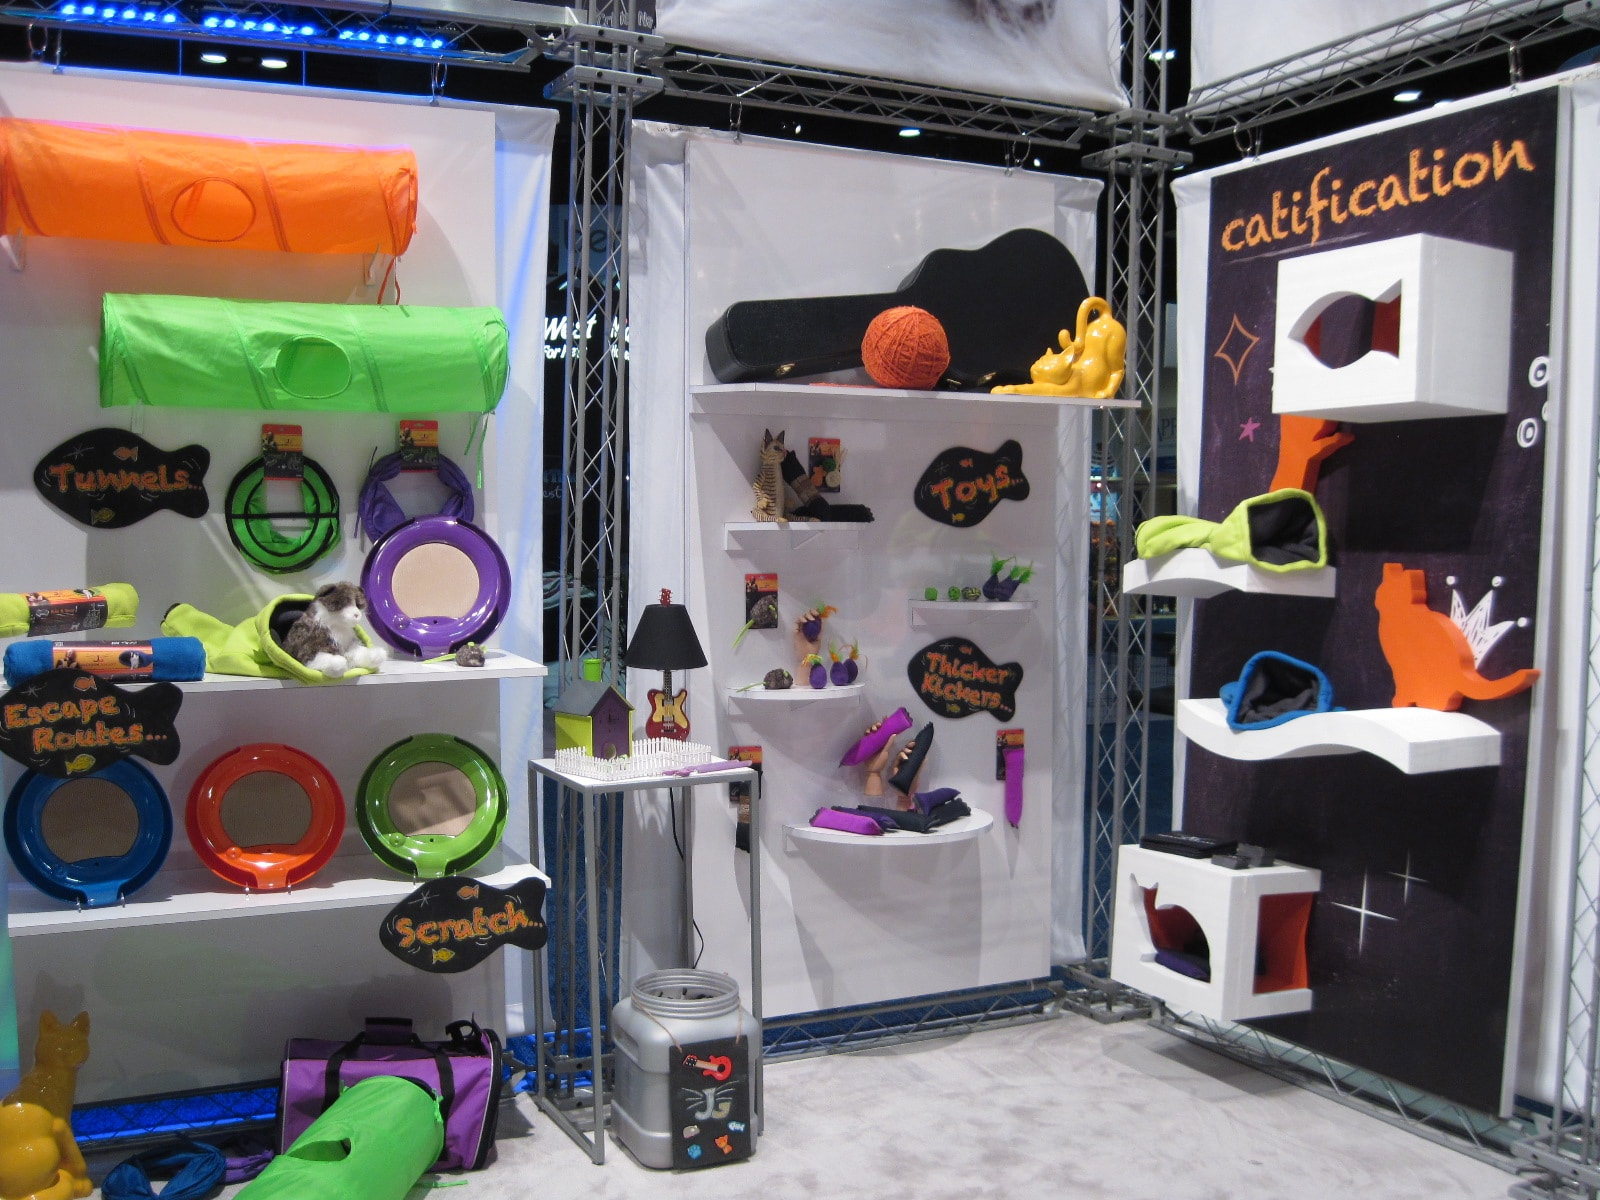 Global pet expo 2014 highlights the conscious cat for Jackson galaxy shop